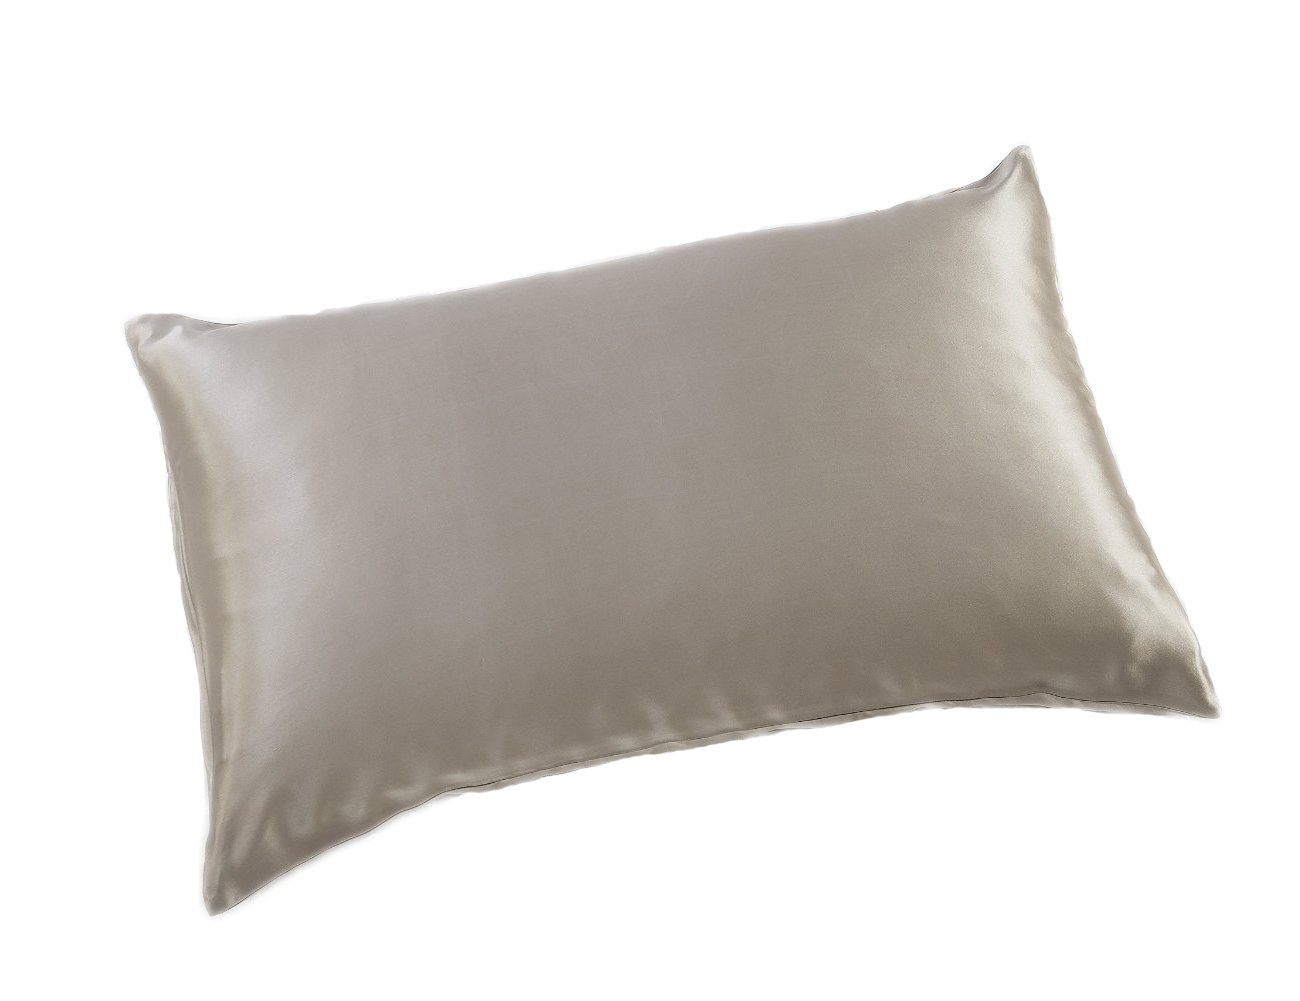 MEILIS SILK Pillowcase for Queen Or Standard Pillows Mulberry Pure Silk Pillow Cover Pillows Protectors 2030Inches